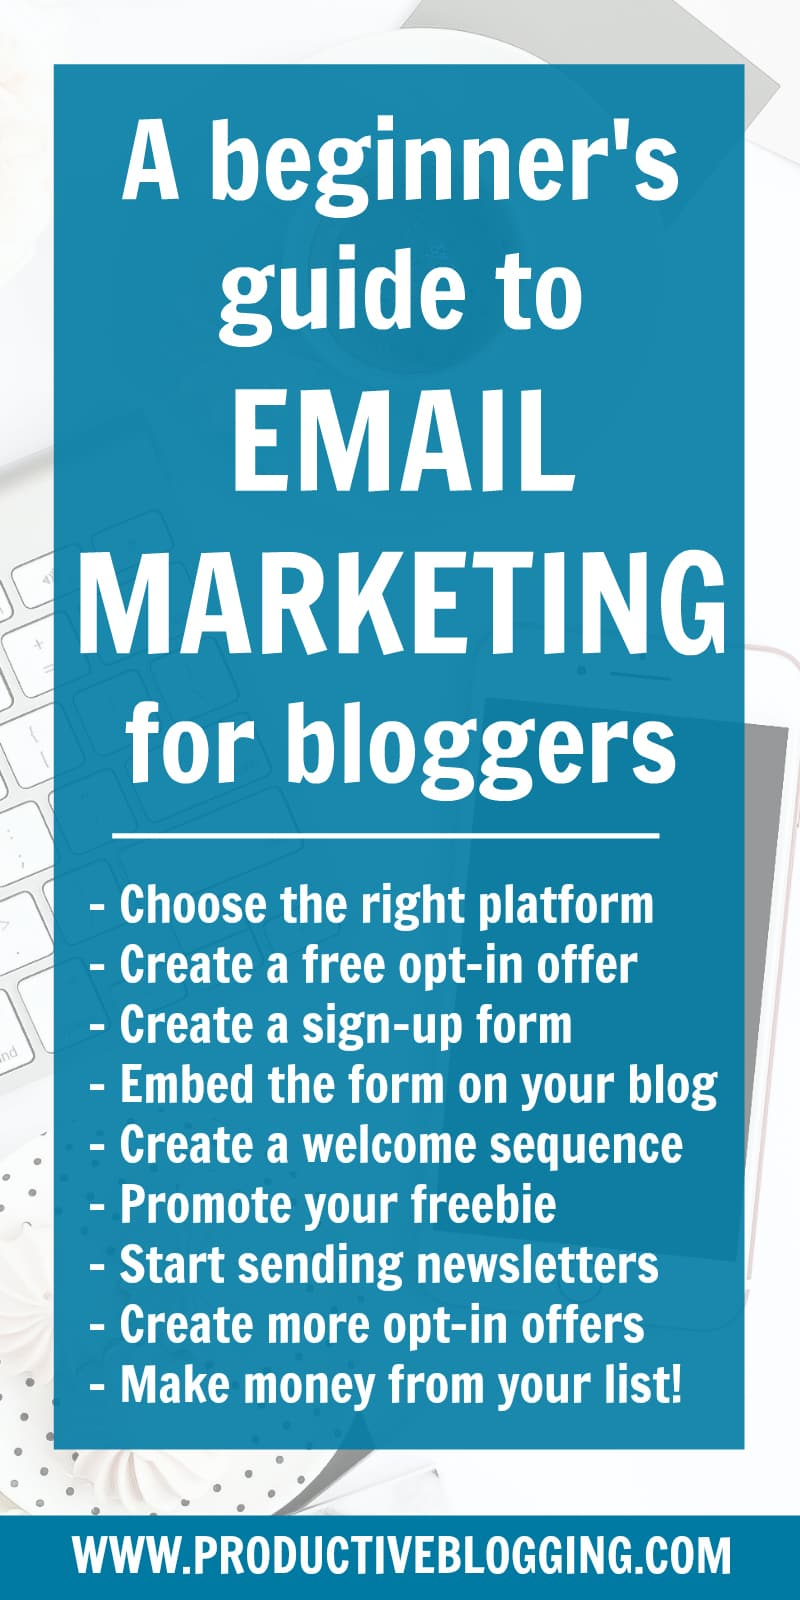 Confused about email marketing? Then you need my step-by-step beginner's guide to email marketing for bloggers, plus get my free 30 Day Grow Your List Challenge! #beginnersguide #emailmarketing #emailmarketingformbloggers #growyourlist #emaillist #subscribers #welcomesequence #optinoffer #growyouremaillist #emailmarketingtips #emaillistgrowth #listbuilding #convertkit #growyourblog #bloggrowth #productivity #productivitytips #bloggingtips #blogging #bloggers #newbloggers #productiveblogging